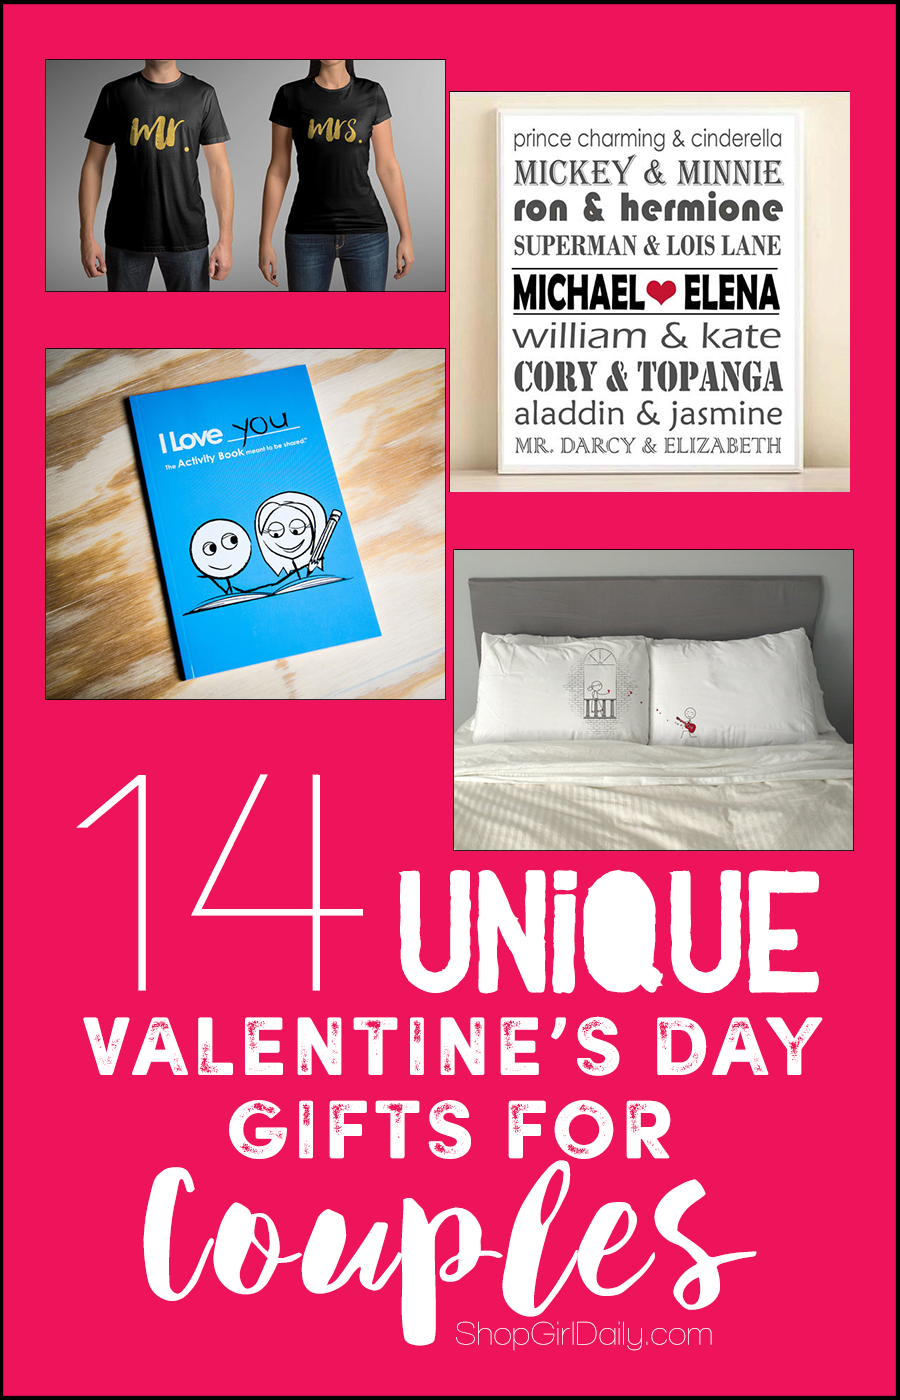 14 Unique Valentineu0027s Day Gifts For Couples | ShopGirlDaily.com